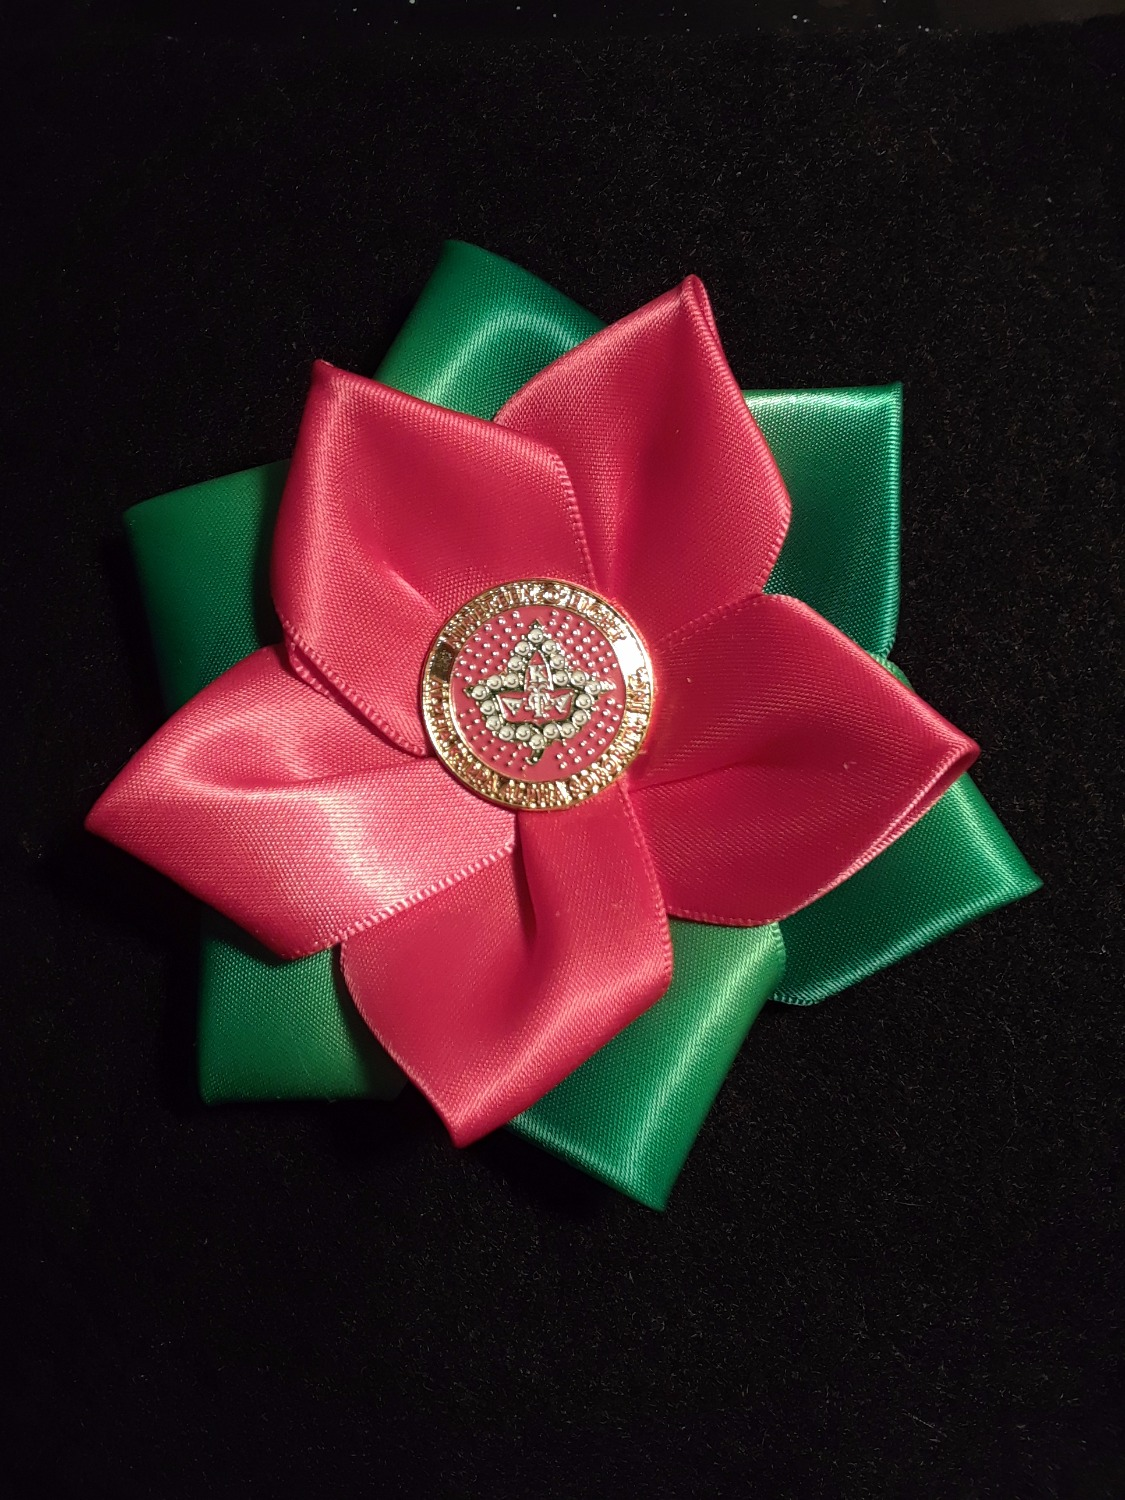 P/G flower badge